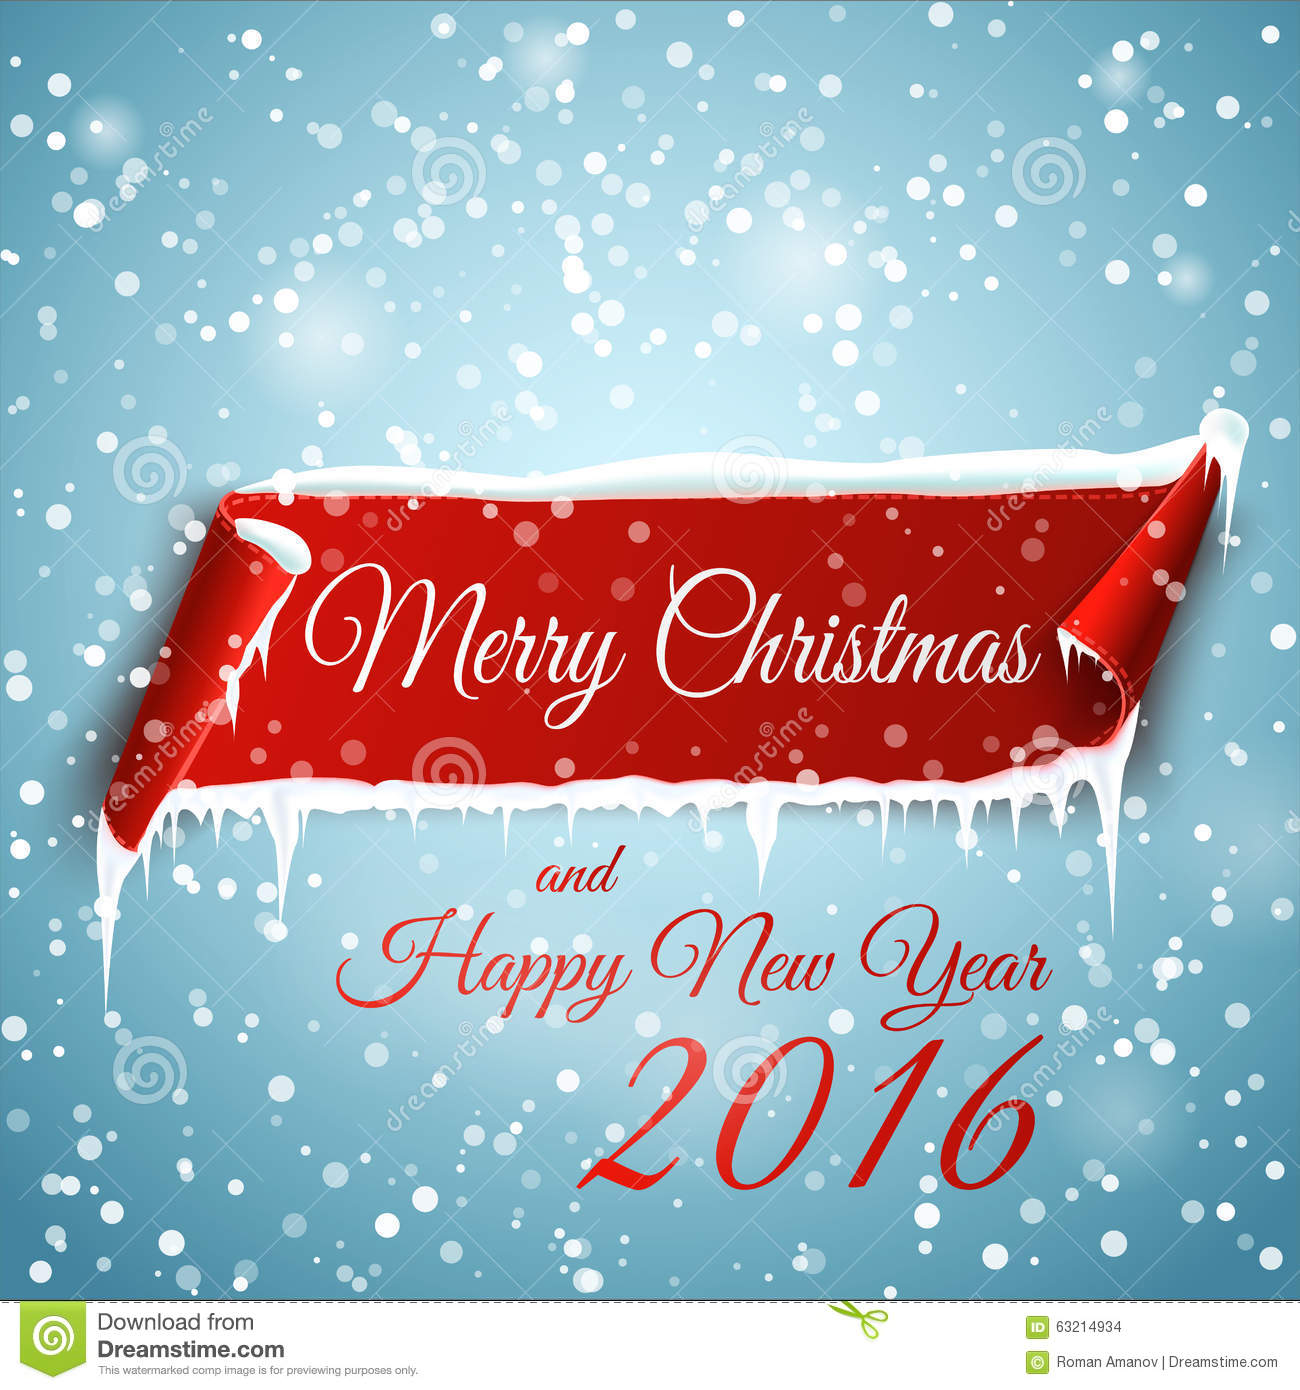 christmas background with red curved paper banner snow and icicles merry christmas and happy new year 2016